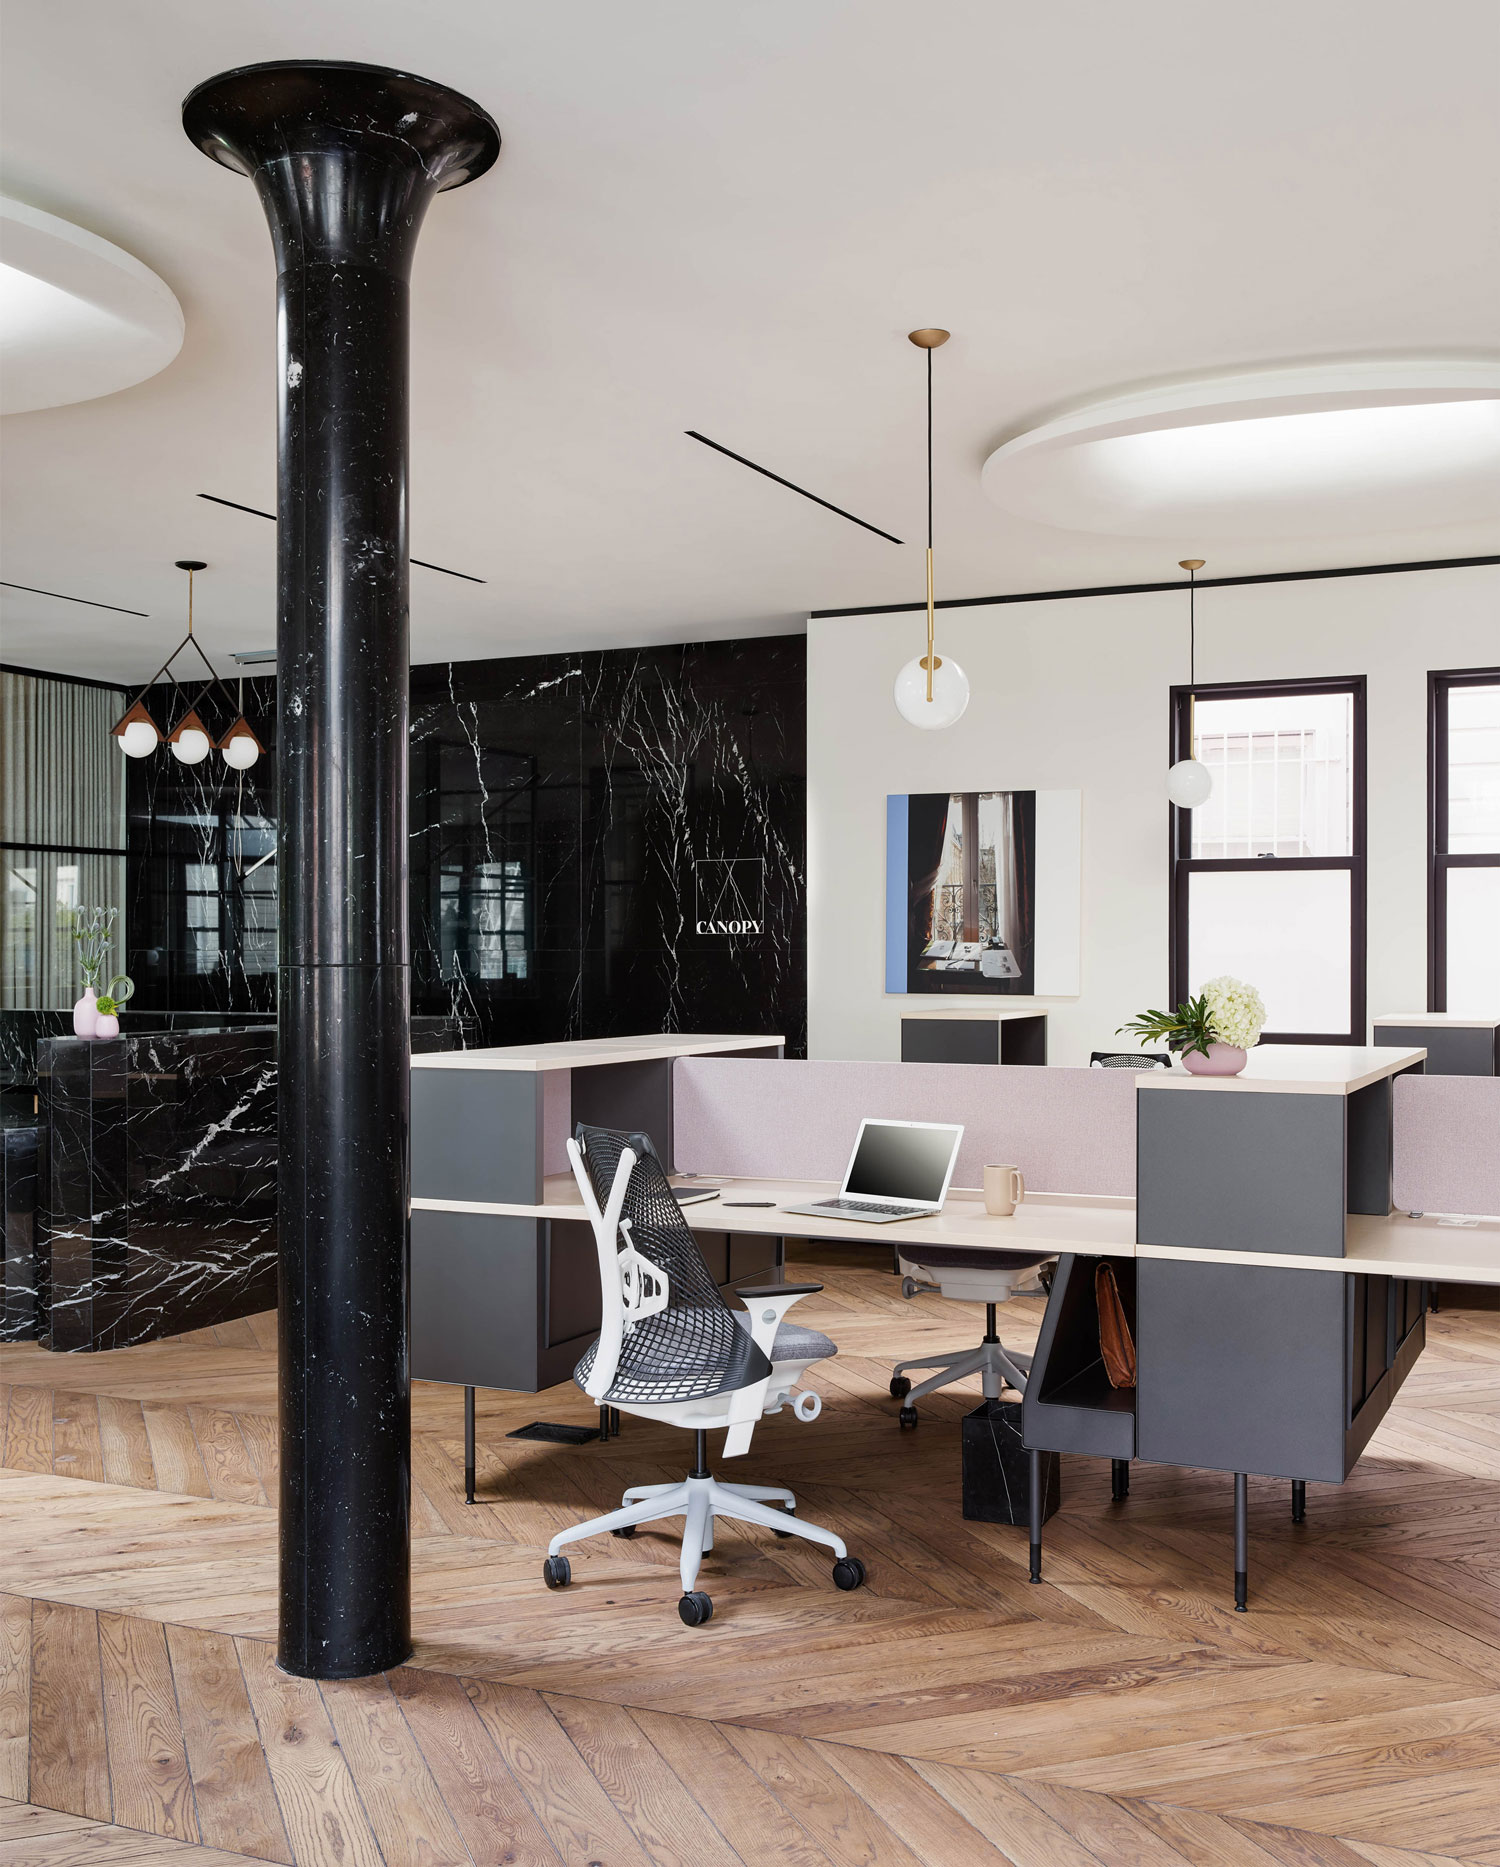 Canopy Space: Boutique Co-Working Office in San Francisco by Yves Behar | Yellowtrace